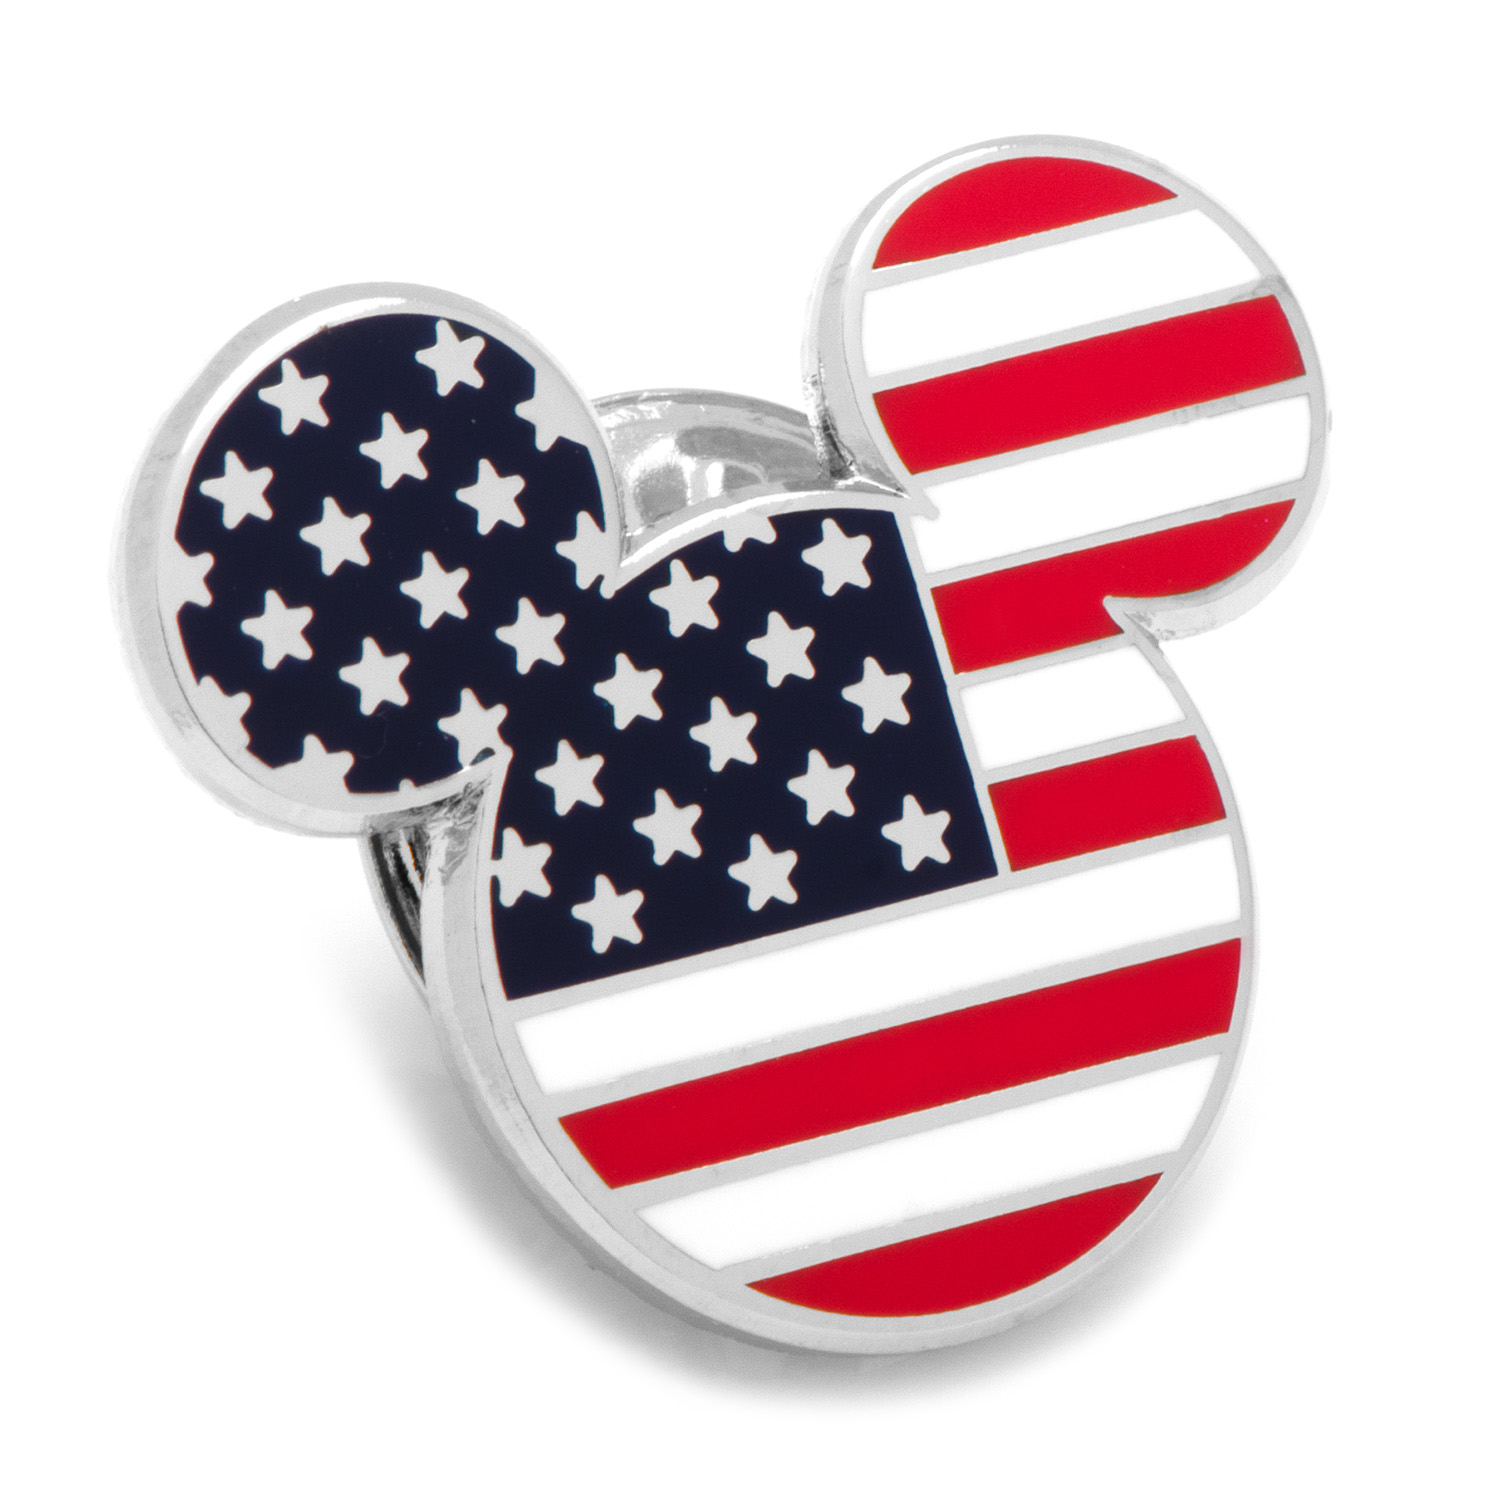 Stars and Stripes Mickey Mouse Lapel Pin